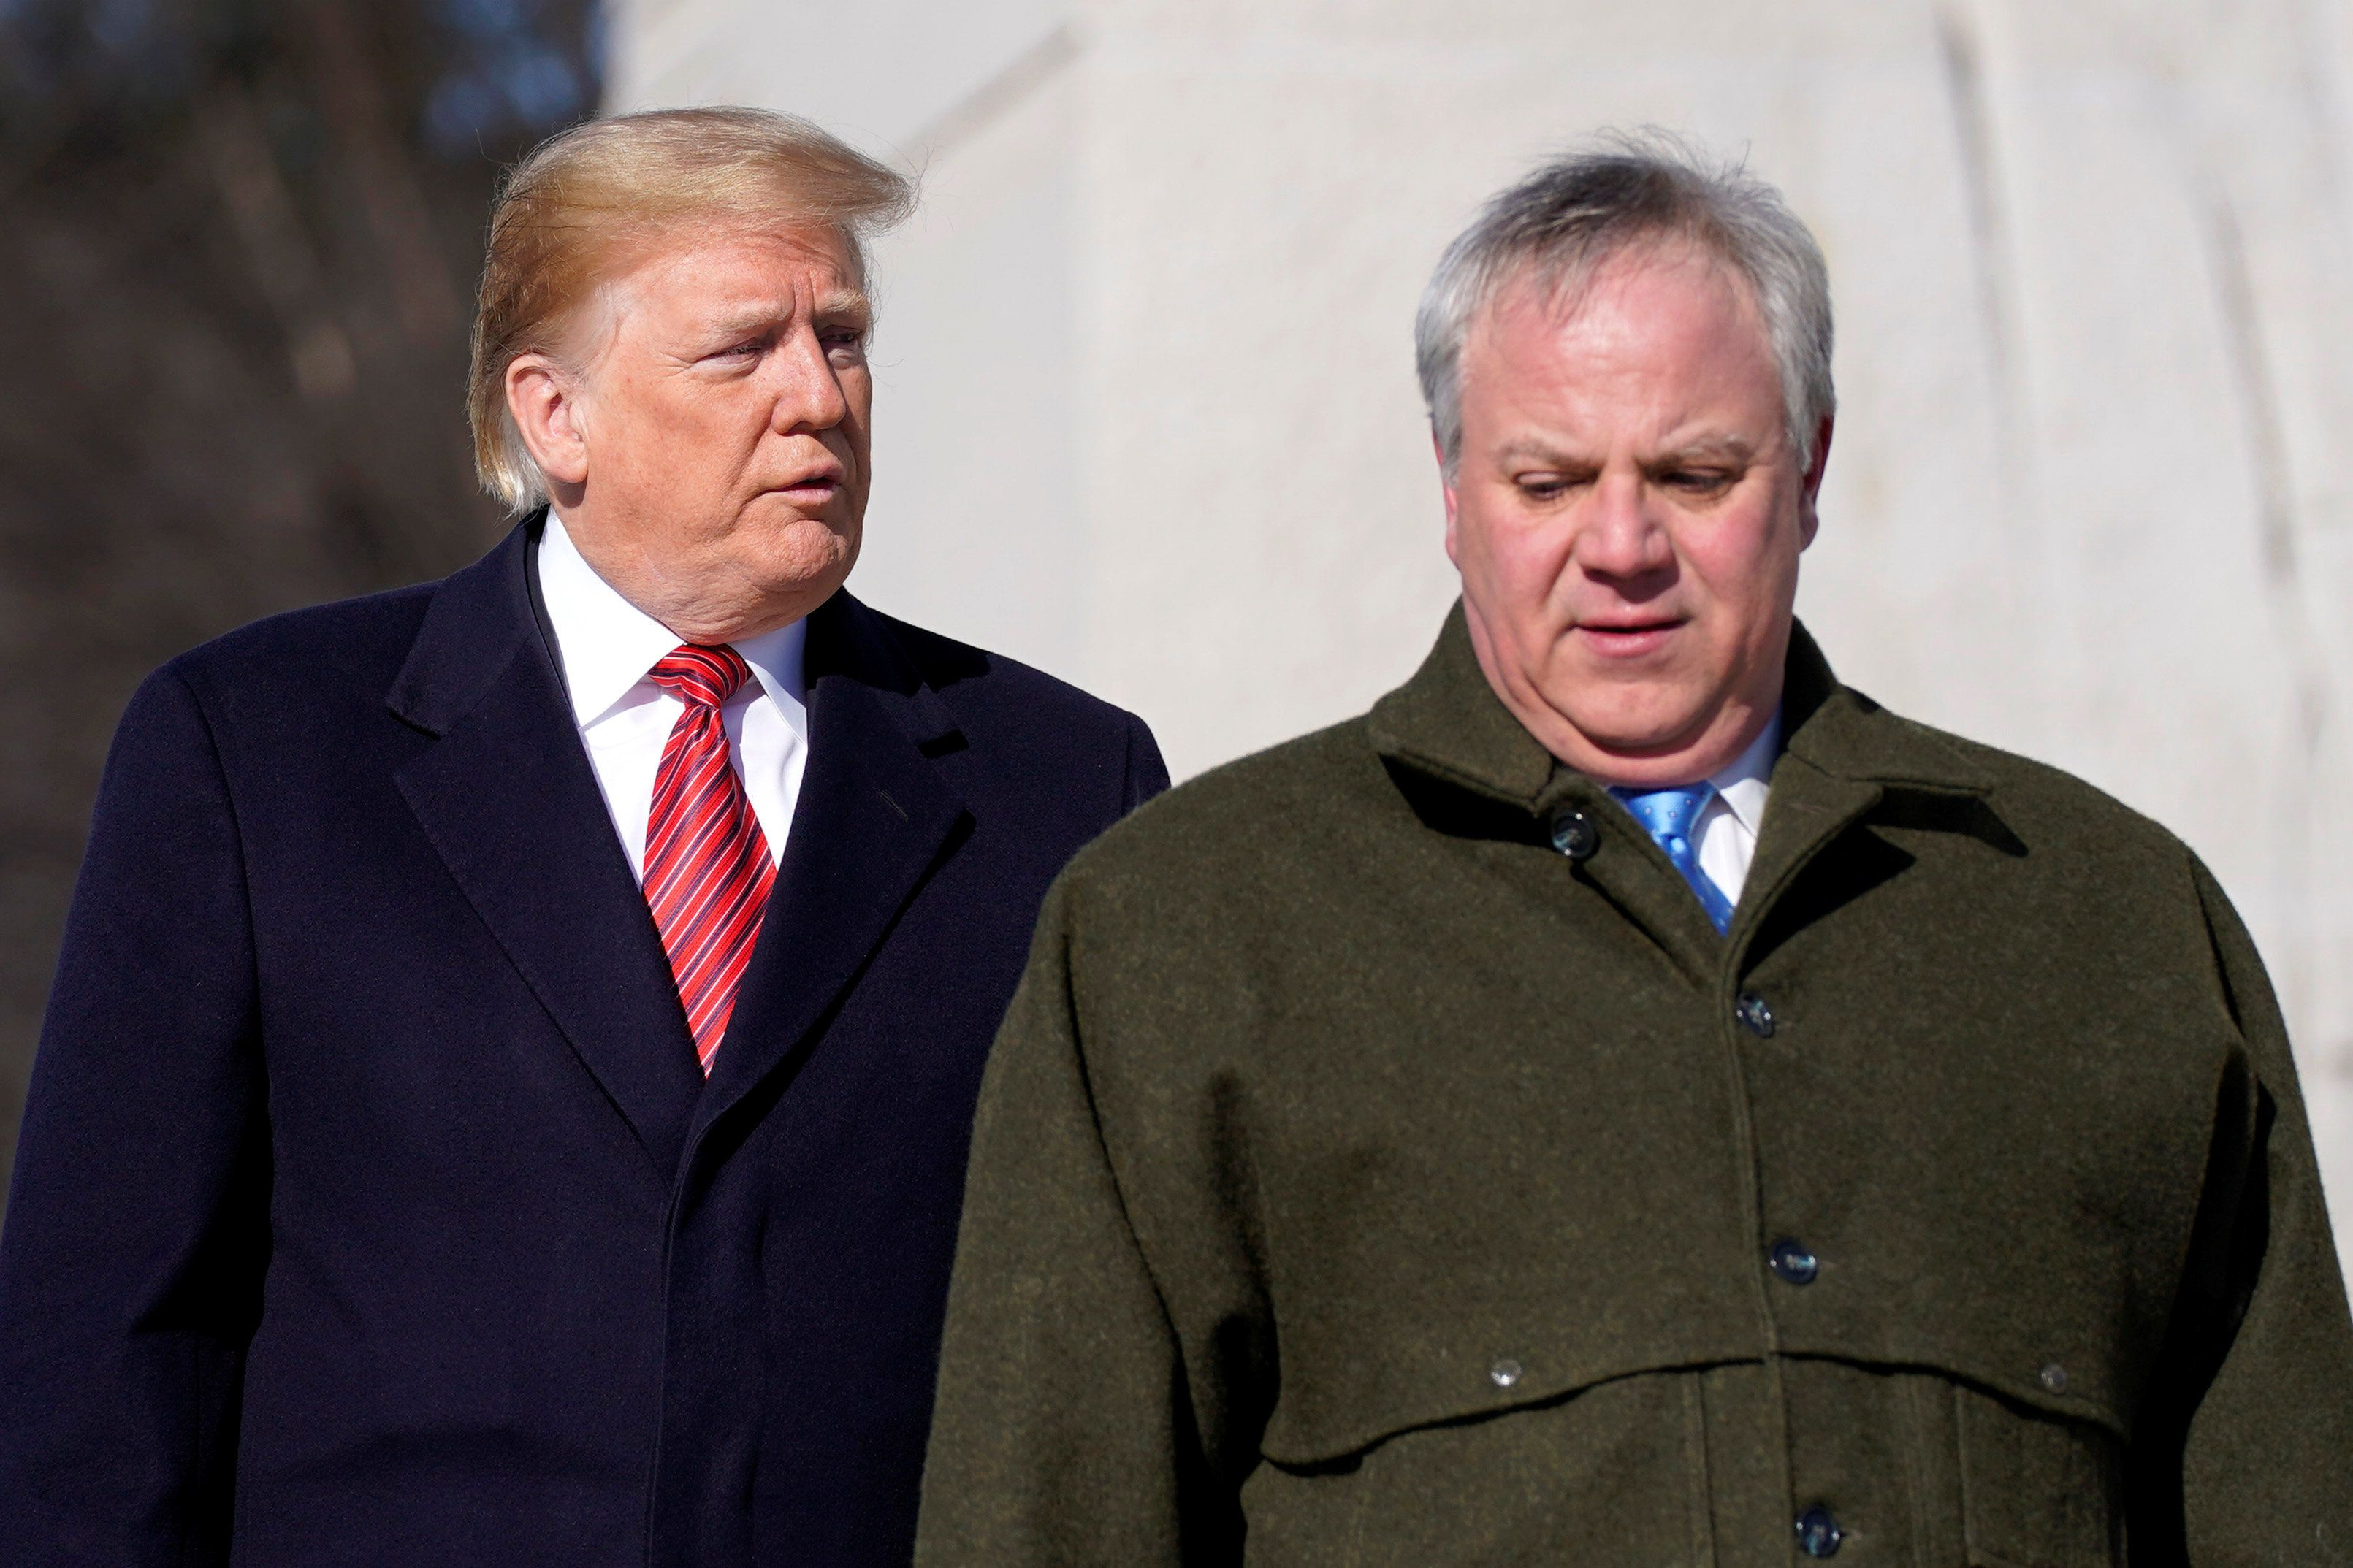 U.S. President Donald Trump and acting U.S. Secretary of Interior David Bernhardt arrive to place a wreath at the Martin Luther King Memorial in Washington, U.S., January 21, 2019.      REUTERS/Joshua Roberts